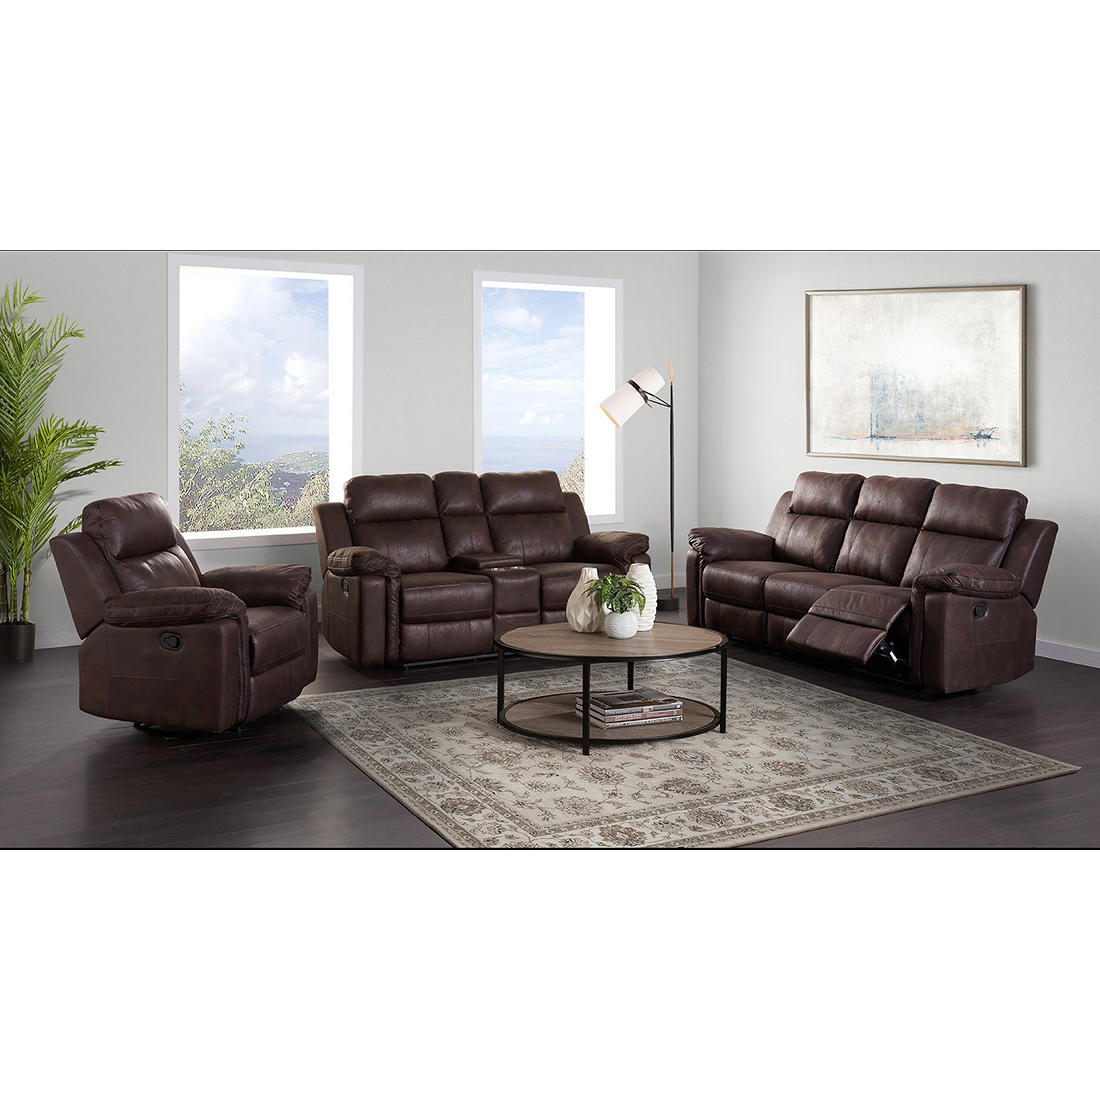 Terrific Jamestown 3 Pc Performance Fabric Reclining Sofa Set Chocolate Sierra Dailytribune Chair Design For Home Dailytribuneorg